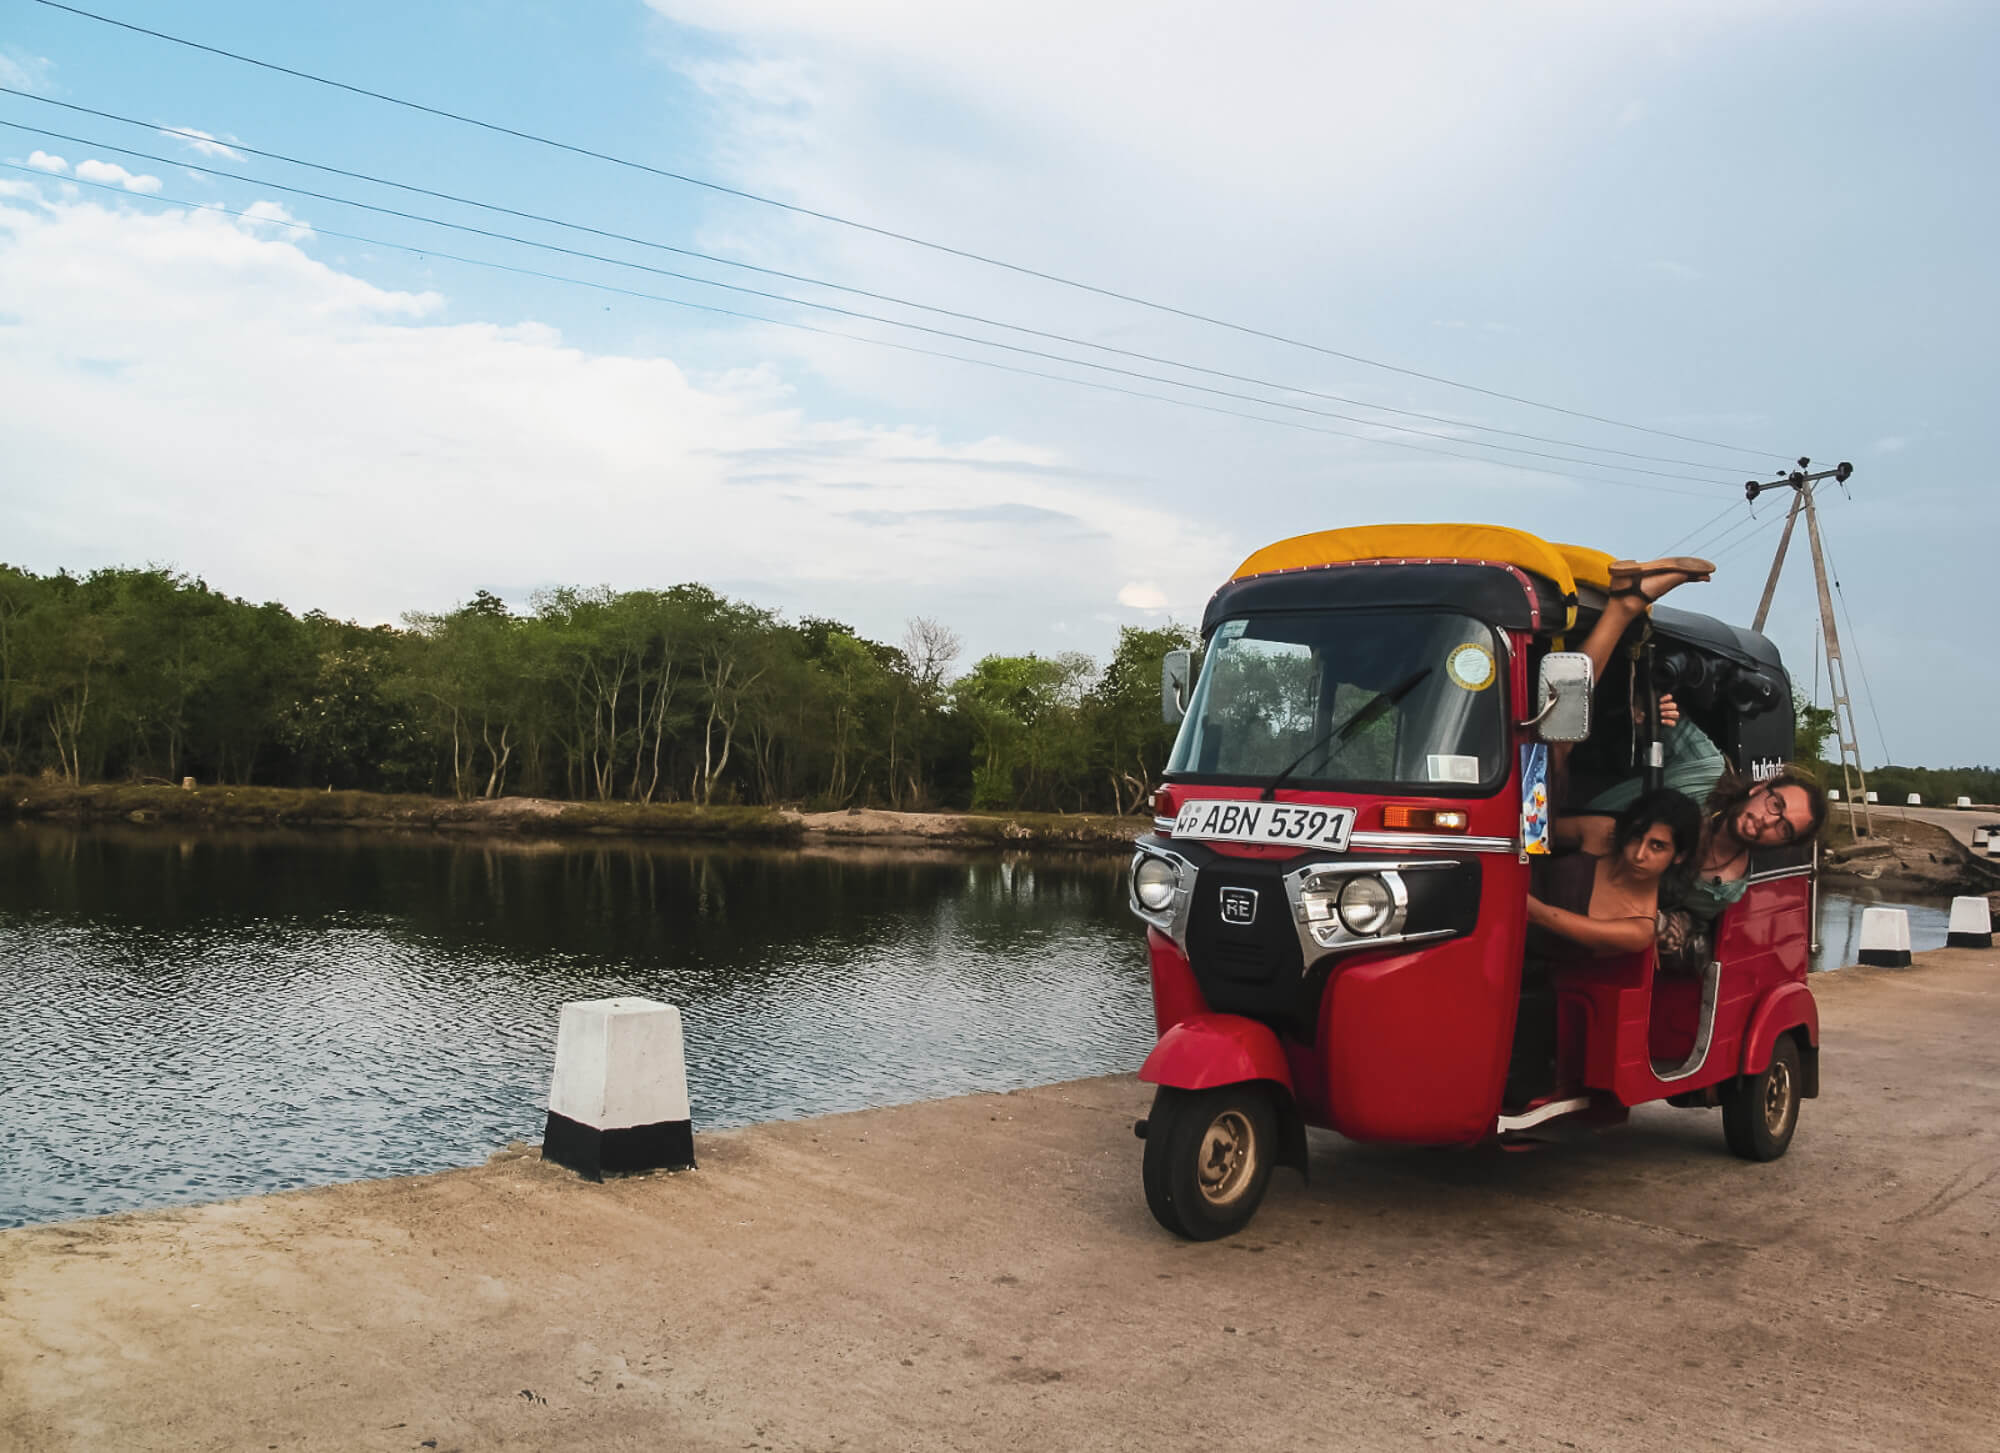 Our tuk-tuk rental - the best way to travel Sri Lanka